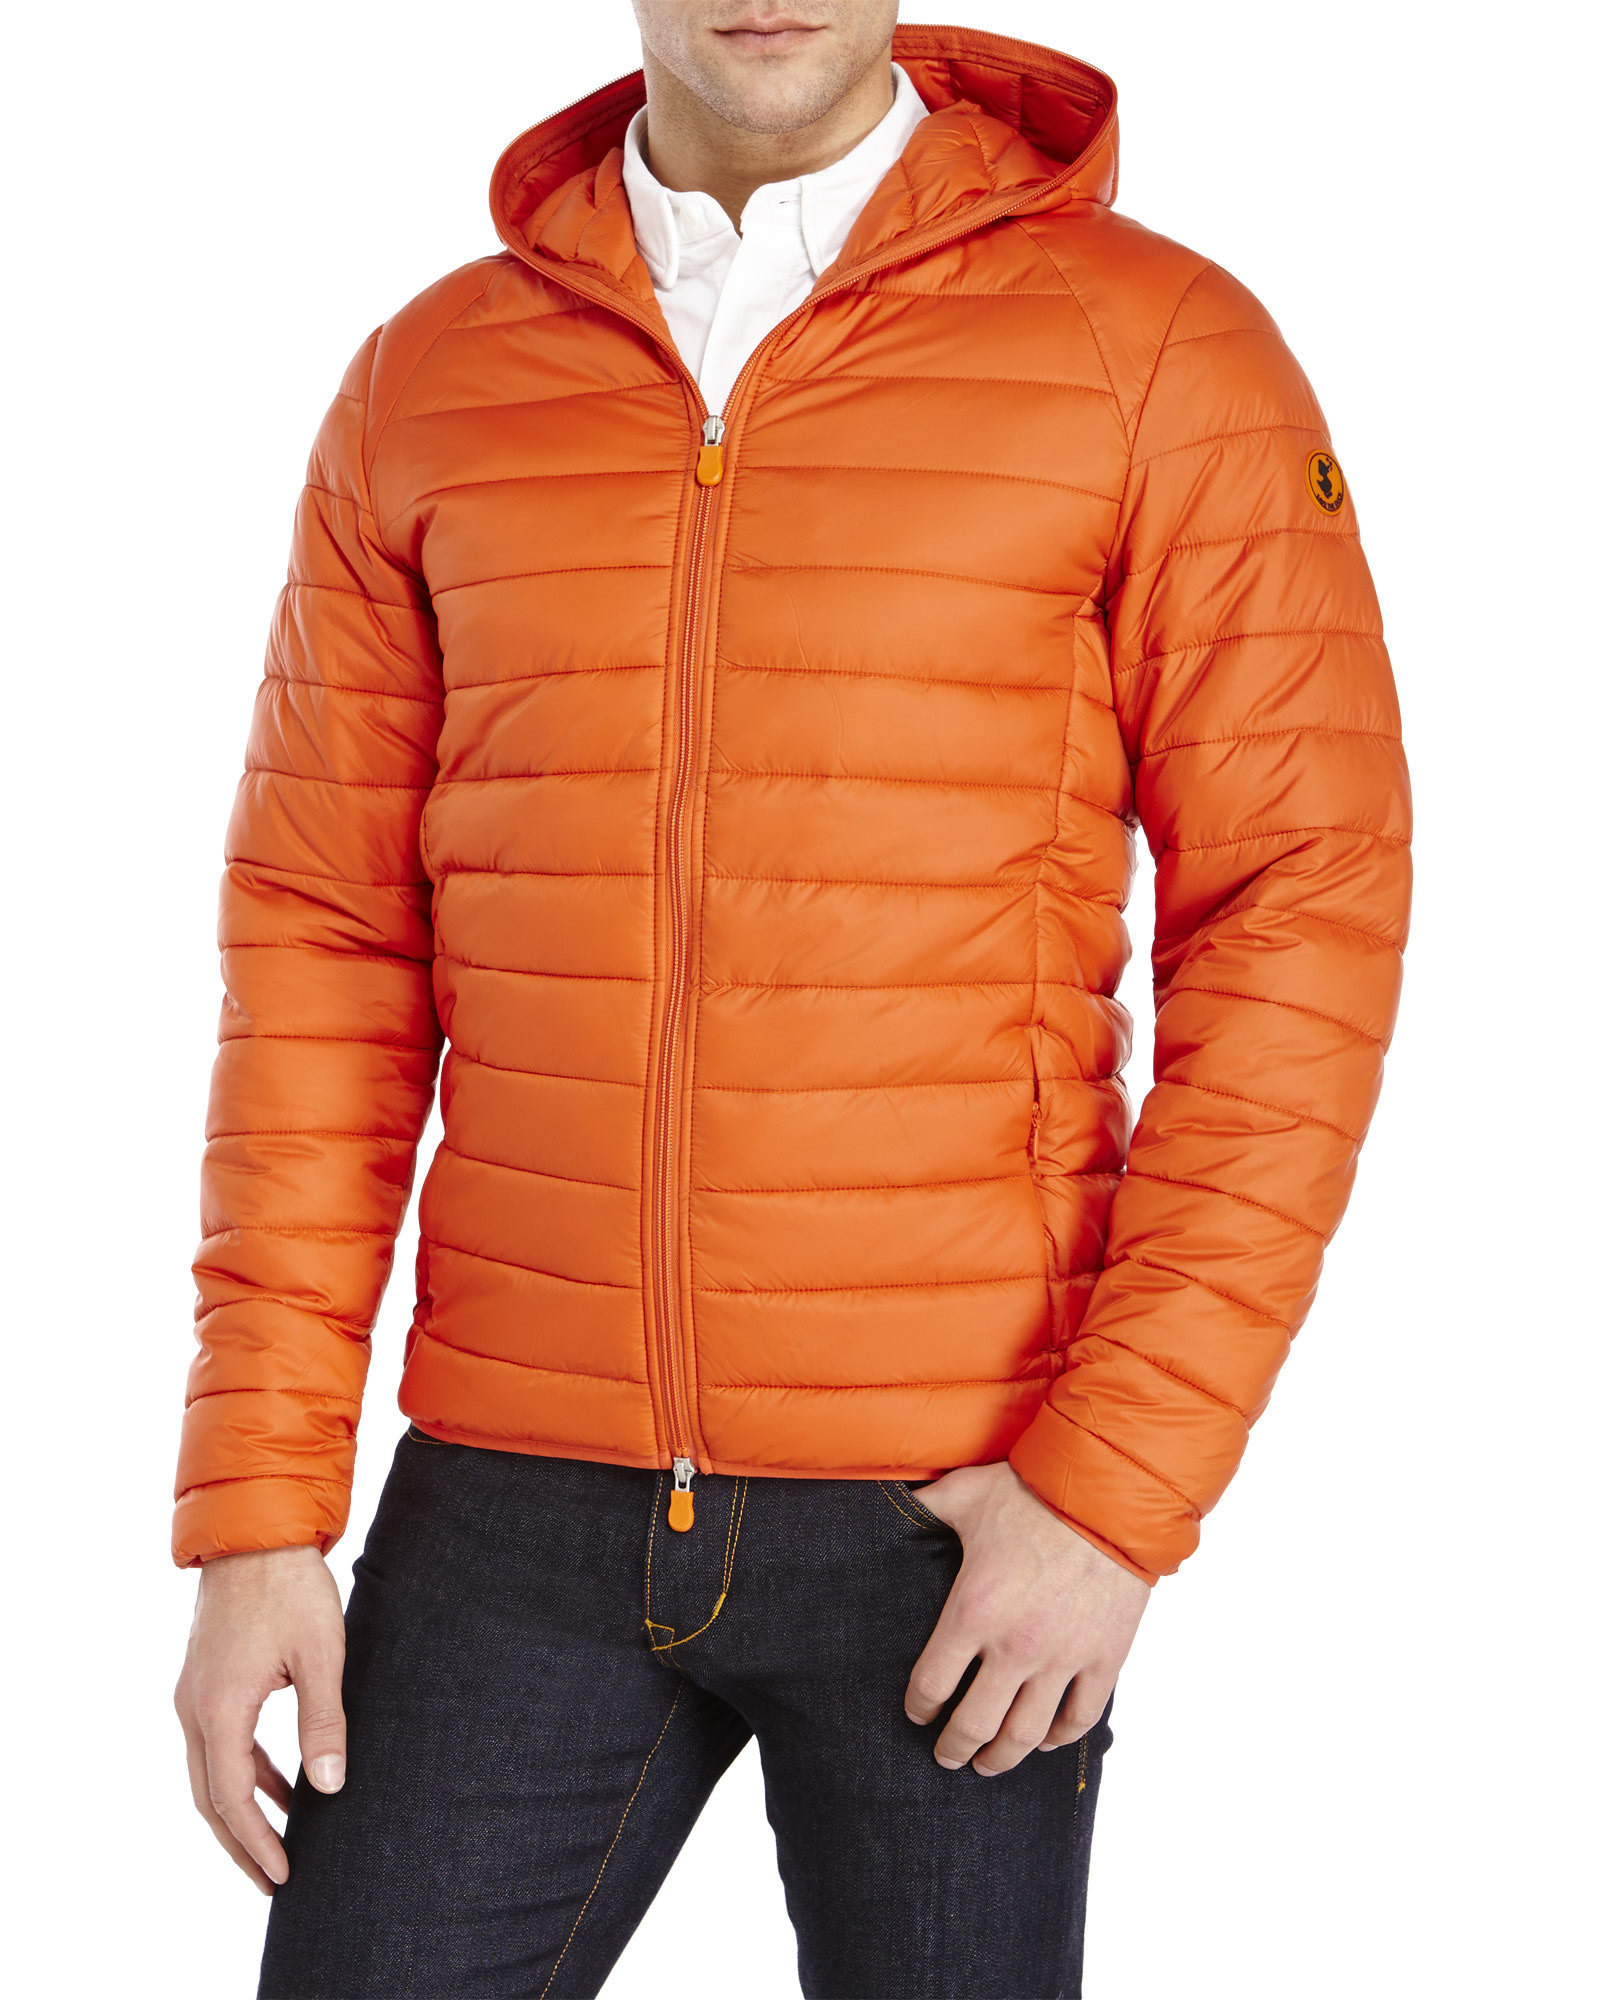 Save The Duck Hooded Puffer Jacket In Orange For Men Lyst